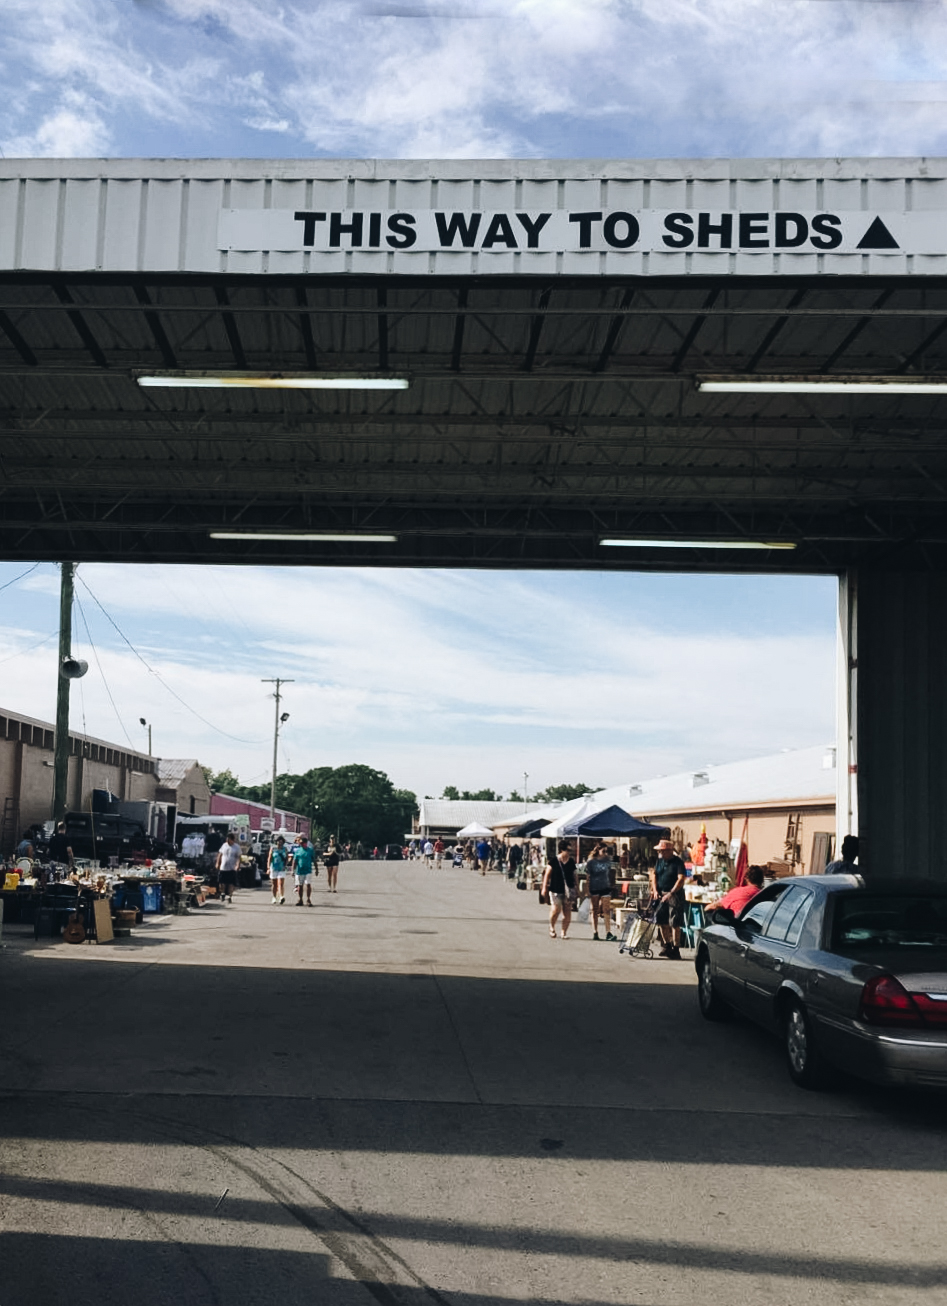 Four Sheds of Vendors strait back this way